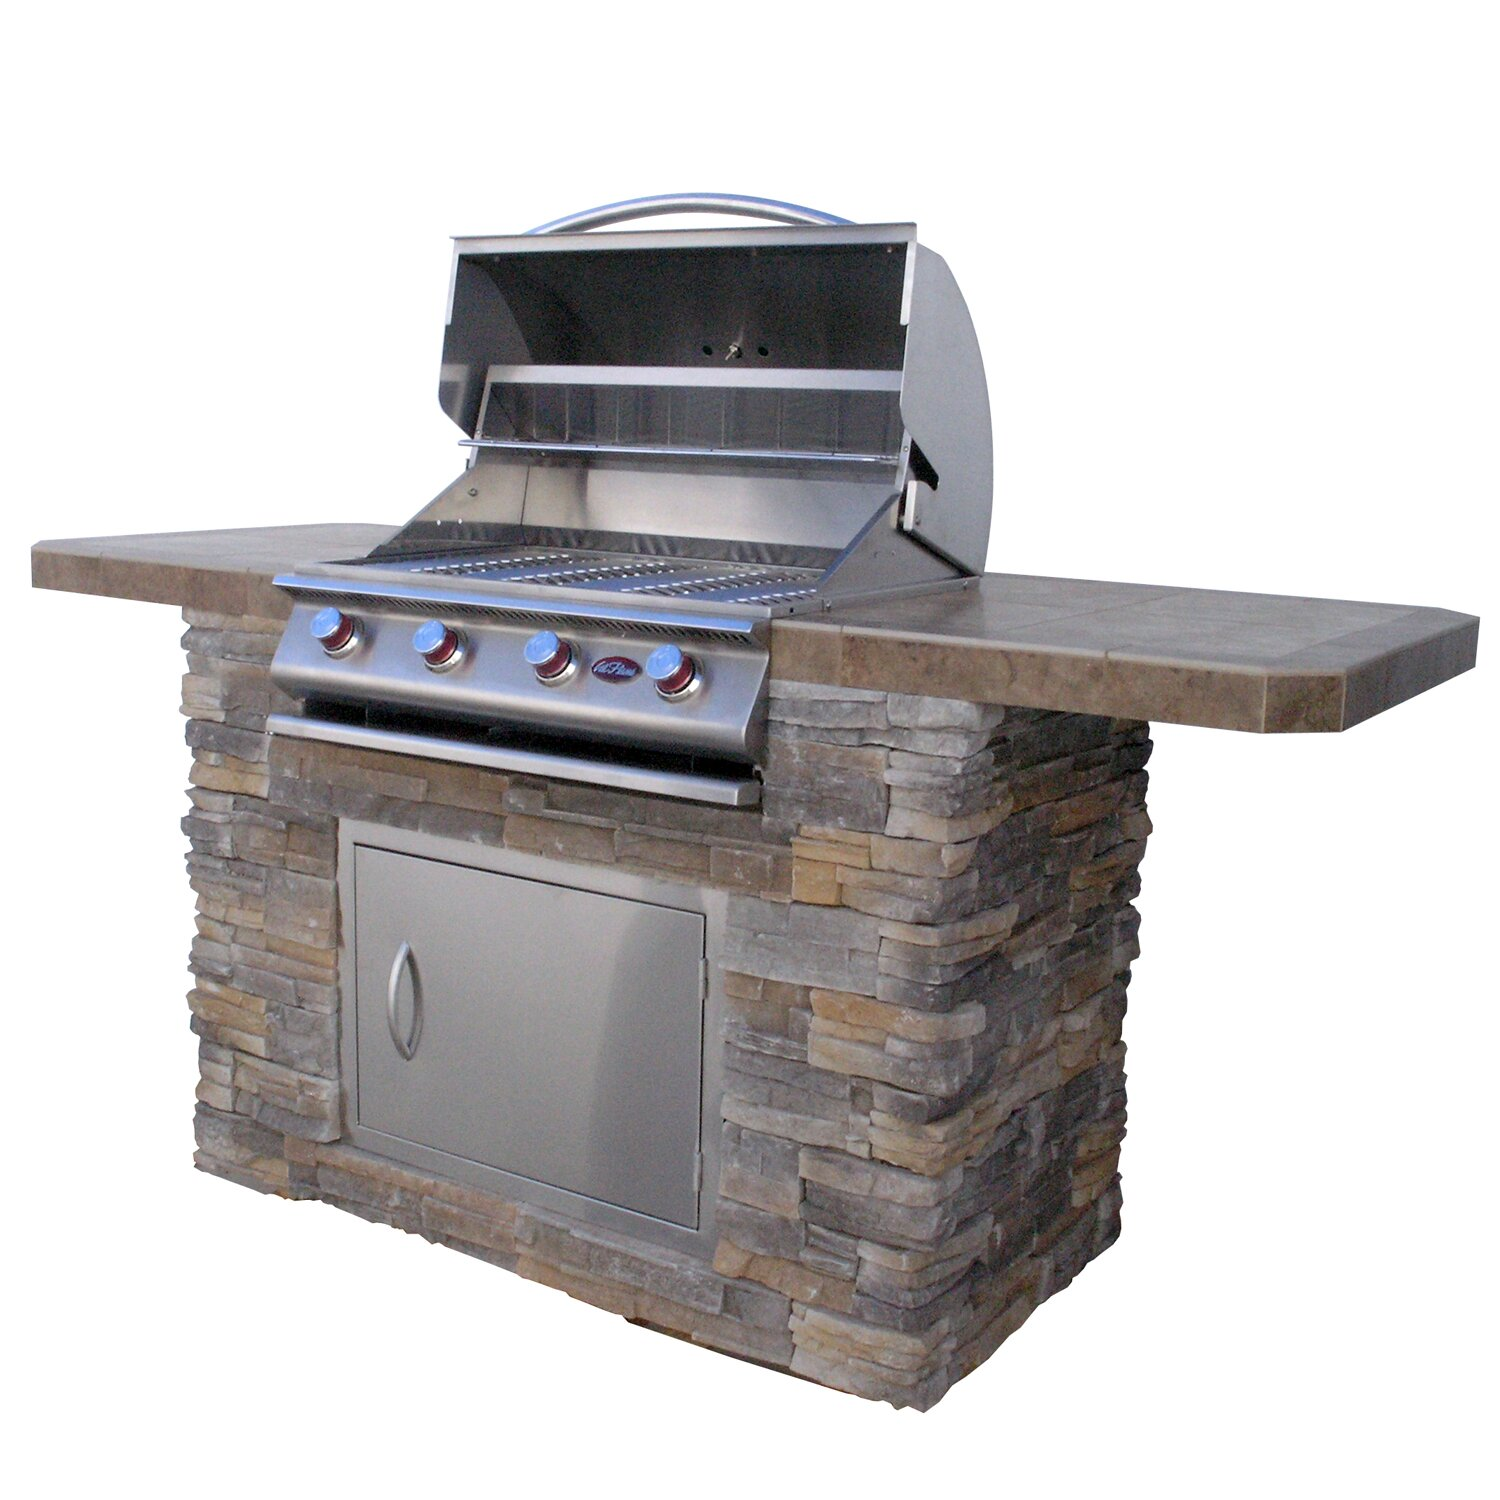 CalFlame 84 4 Burner Liquid Propane Gas Grill Wayfair